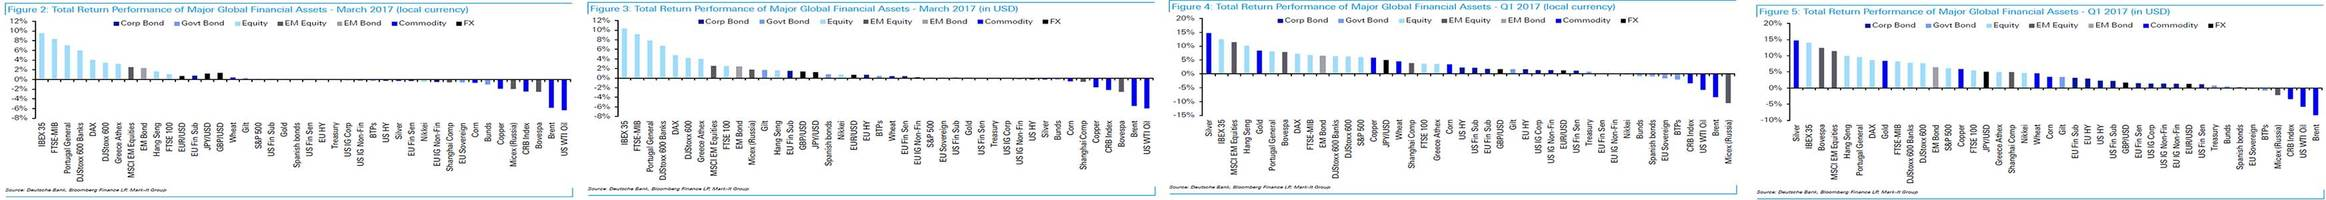 the best and worst performing assets of the first quarter